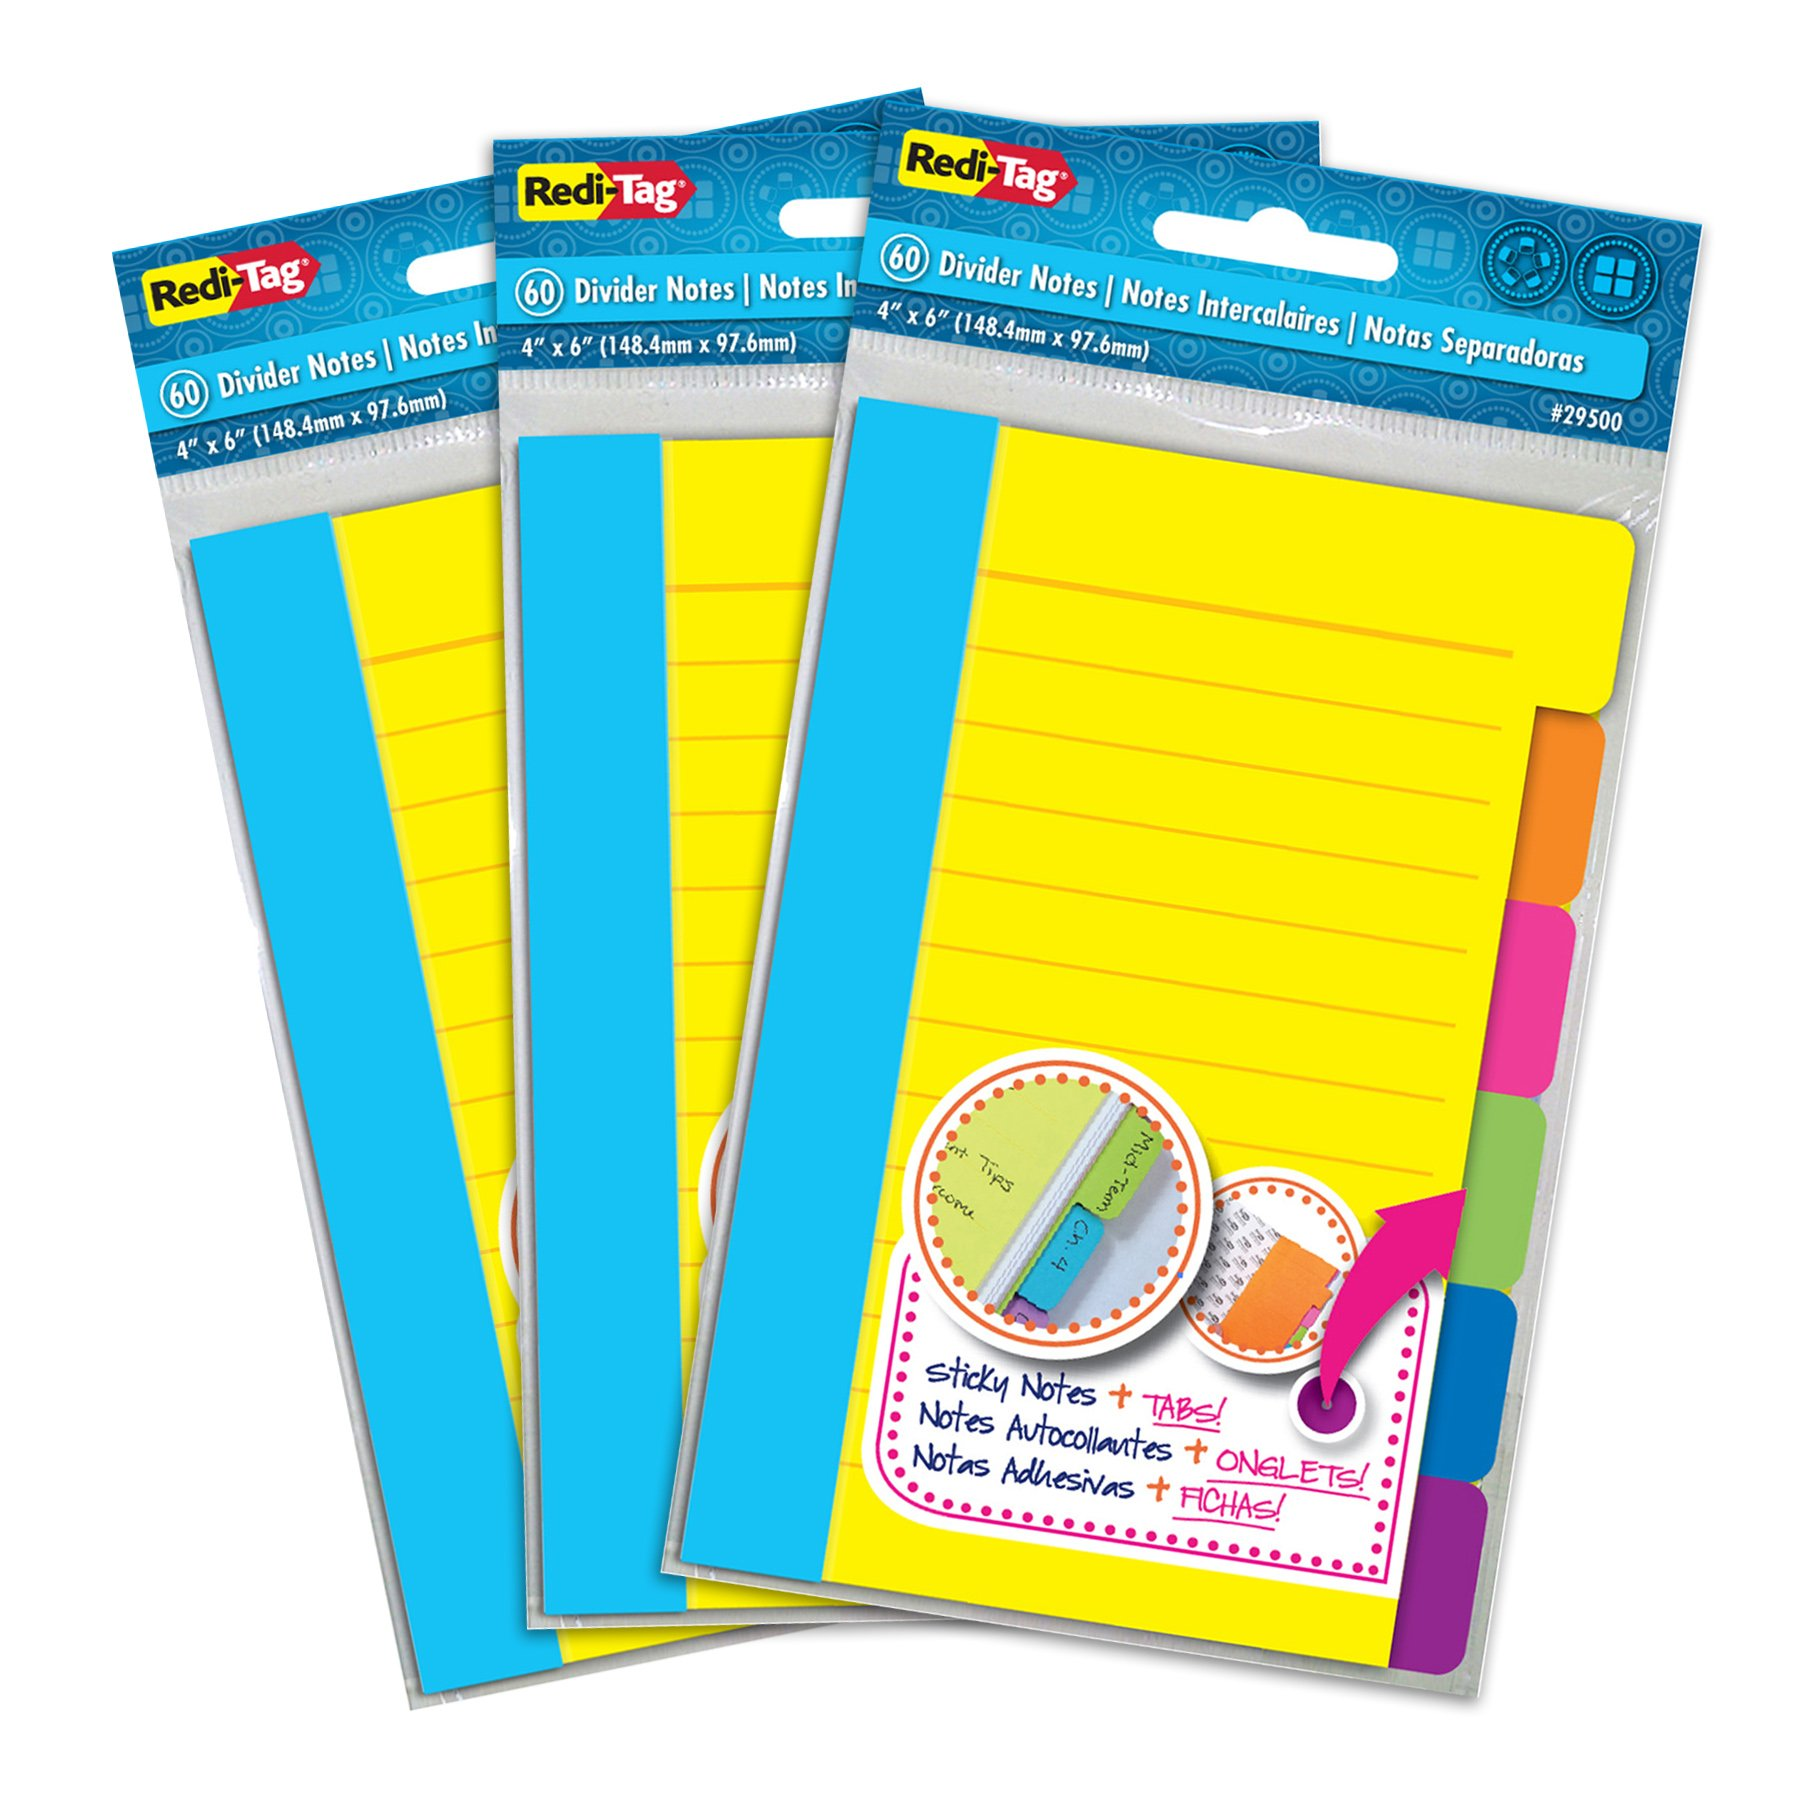 Redi-Tag Divider Sticky Notes, Tabbed Self-Stick Lined Note Pad, 60 Ruled Notes per Pack, 4 x 6 Inches, Assorted Neon Colors, 3 Pack (10245) by Redi-Tag